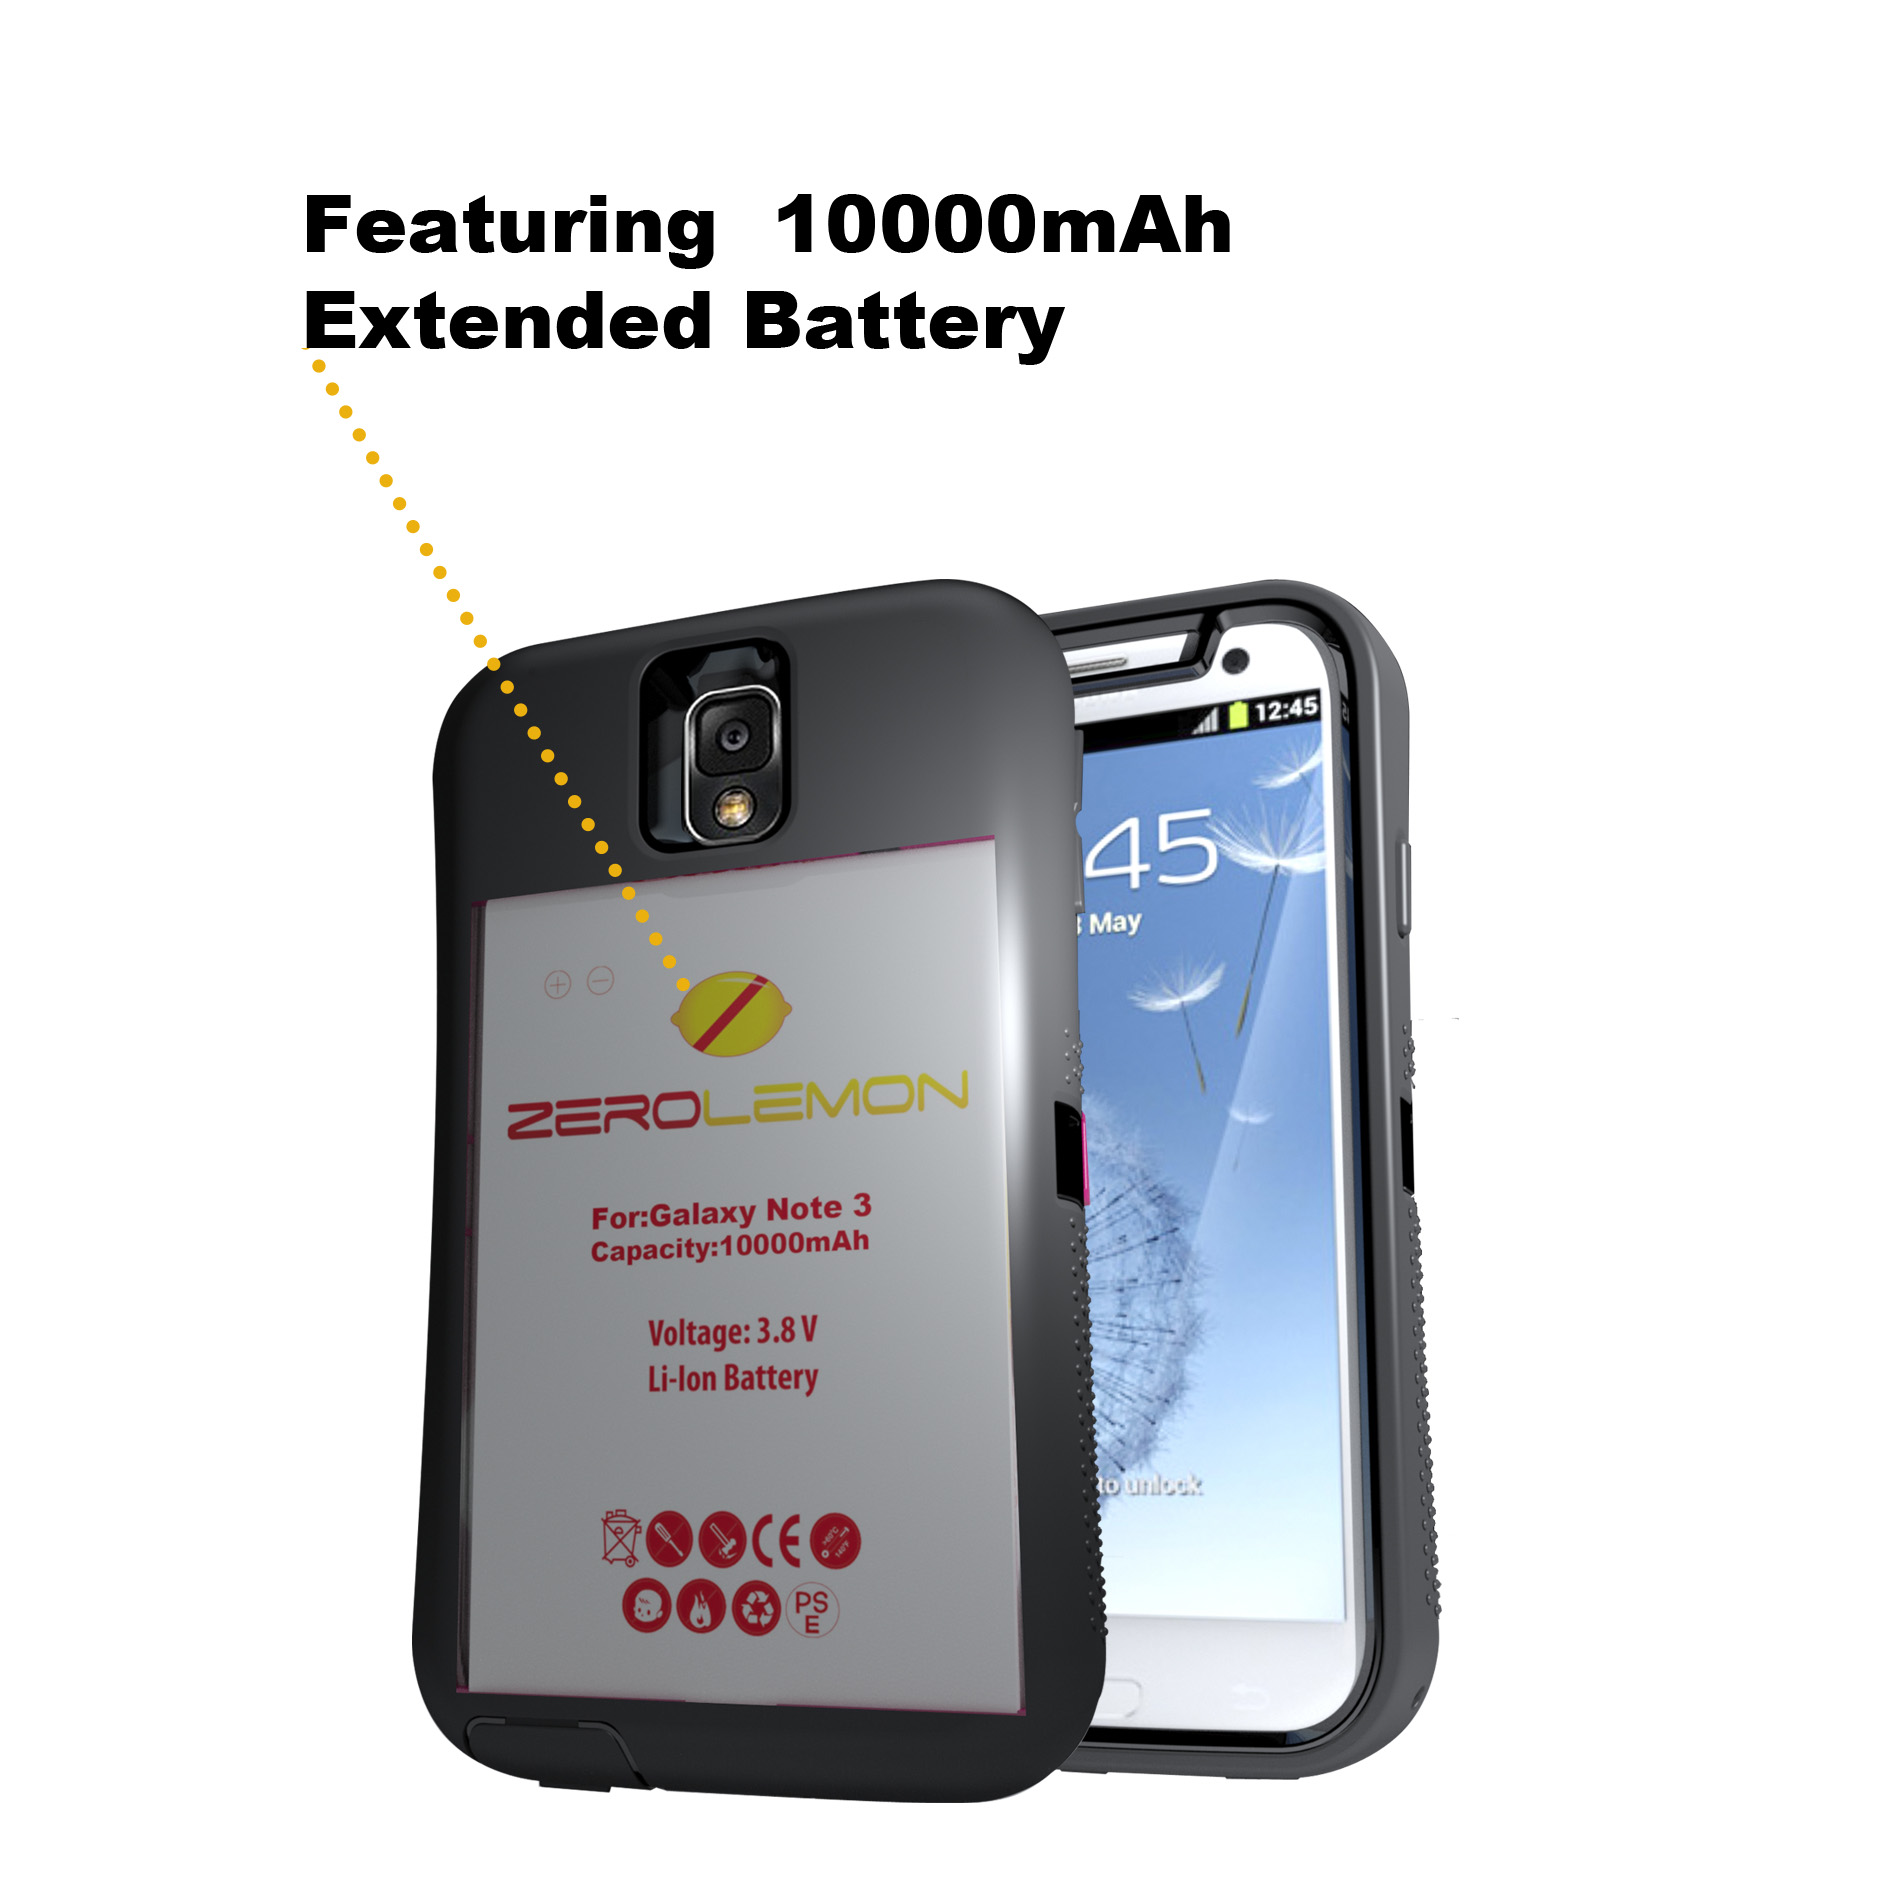 zerolemon-extended-battery-1